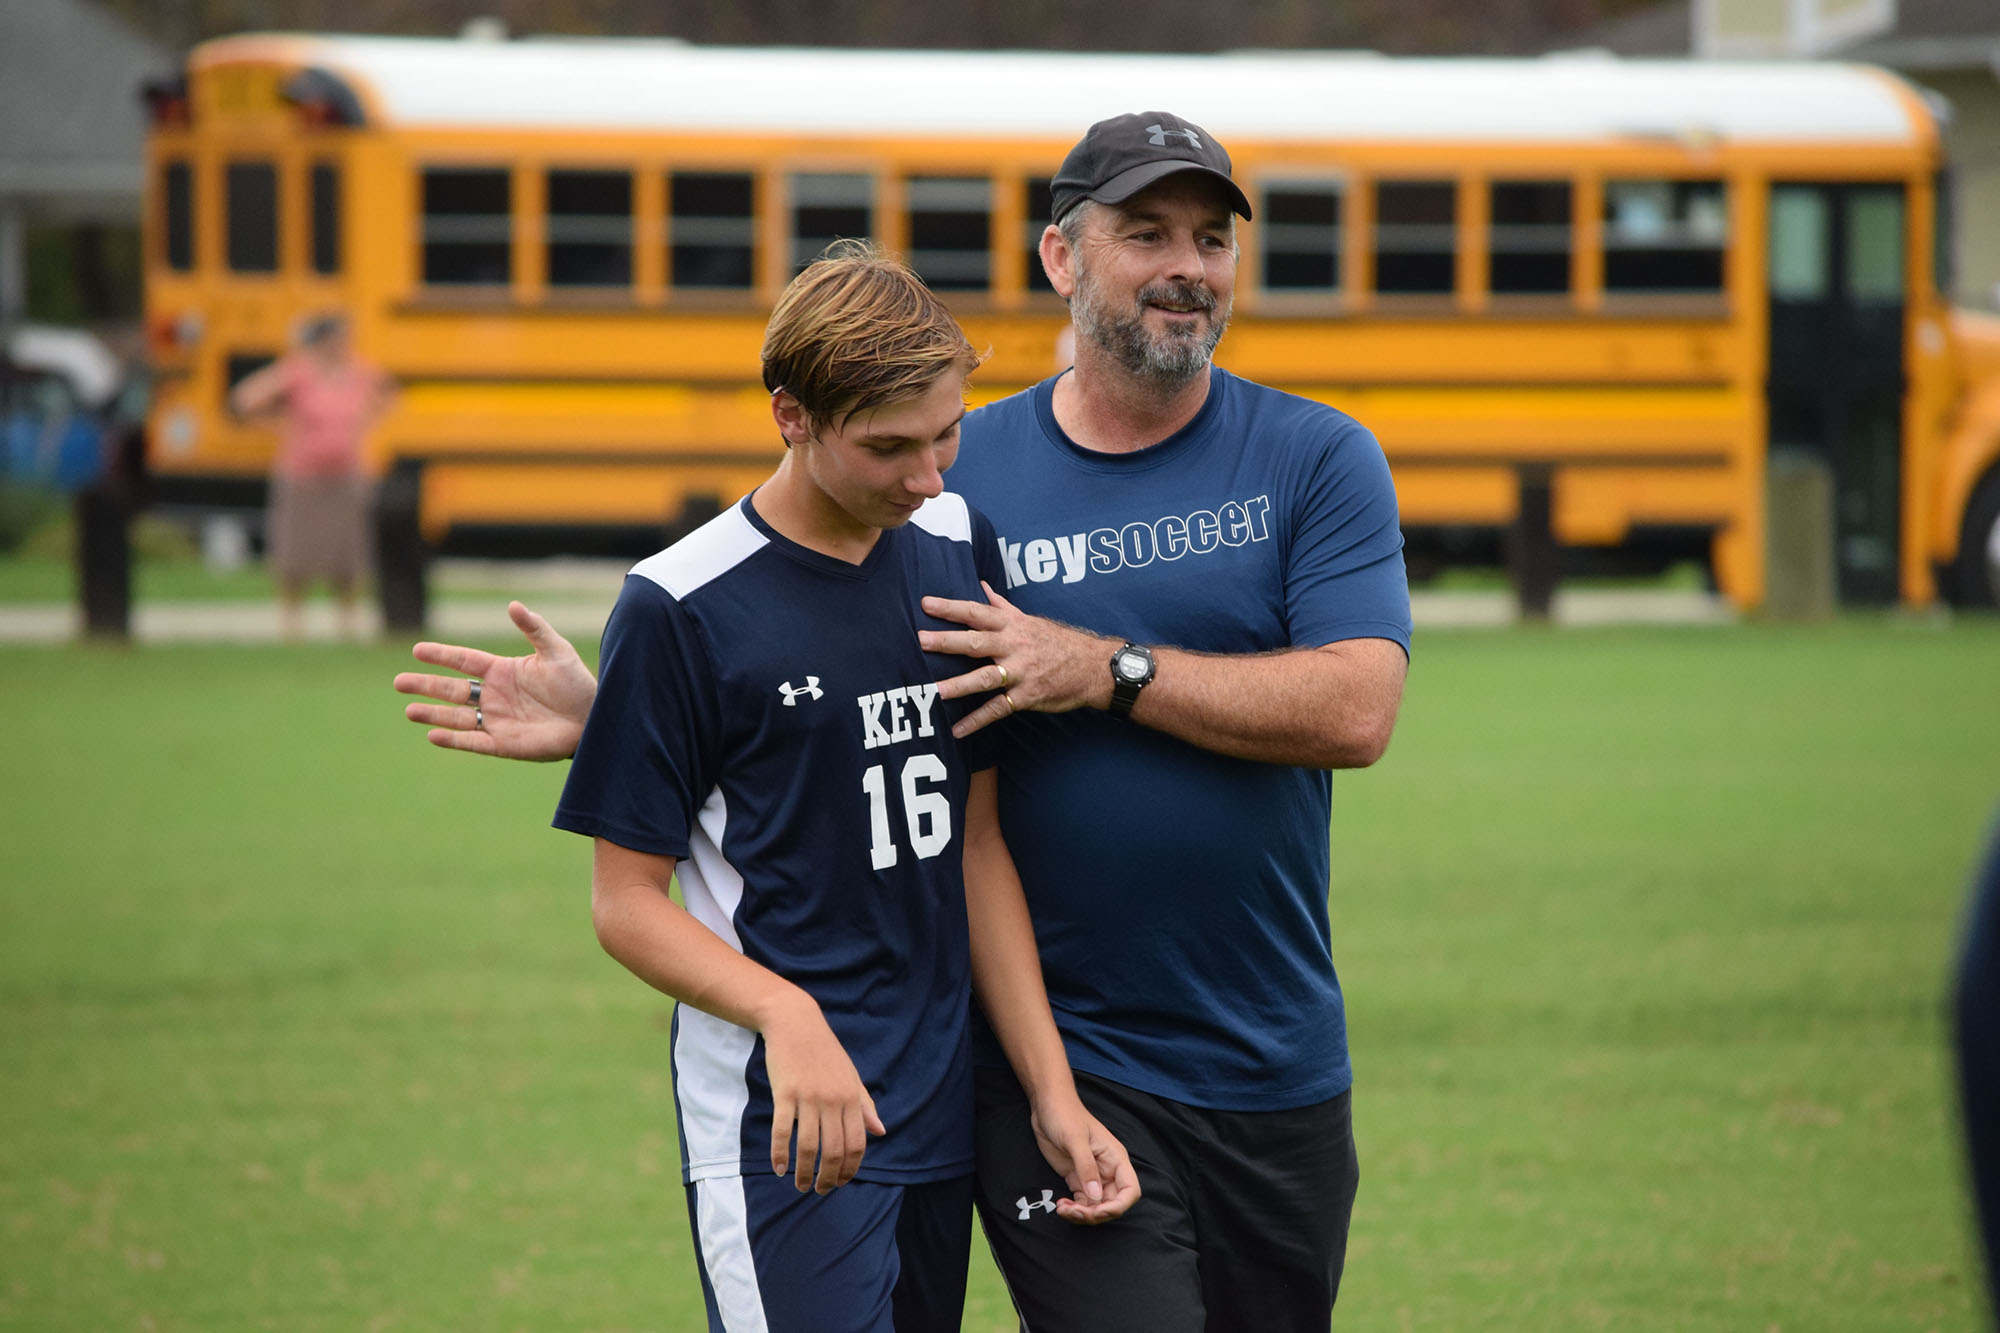 Dylan Lewis Earns 200th Career Win as Boys' Varsity Soccer Head Coach